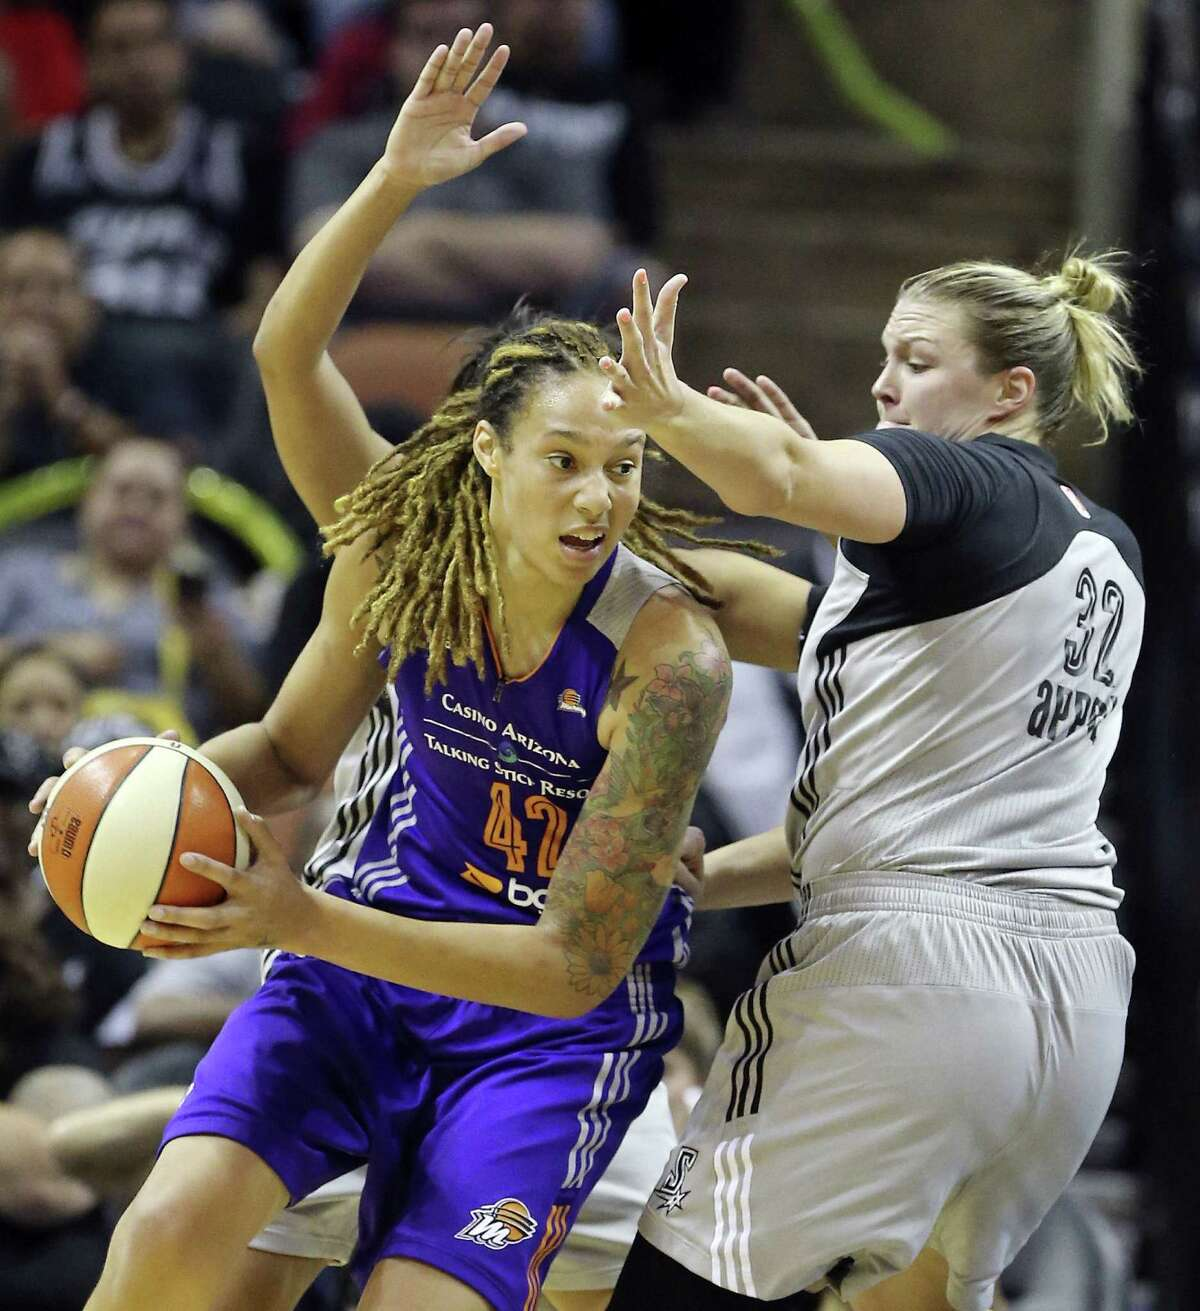 Phoenix center and former Baylor star Brittney Griner looks for post position on the Stars' Jayne Appel on Saturday night at the AT&T Center. Griner had 16 points and 18 rebounds in the Mercury's double-overtime victory.